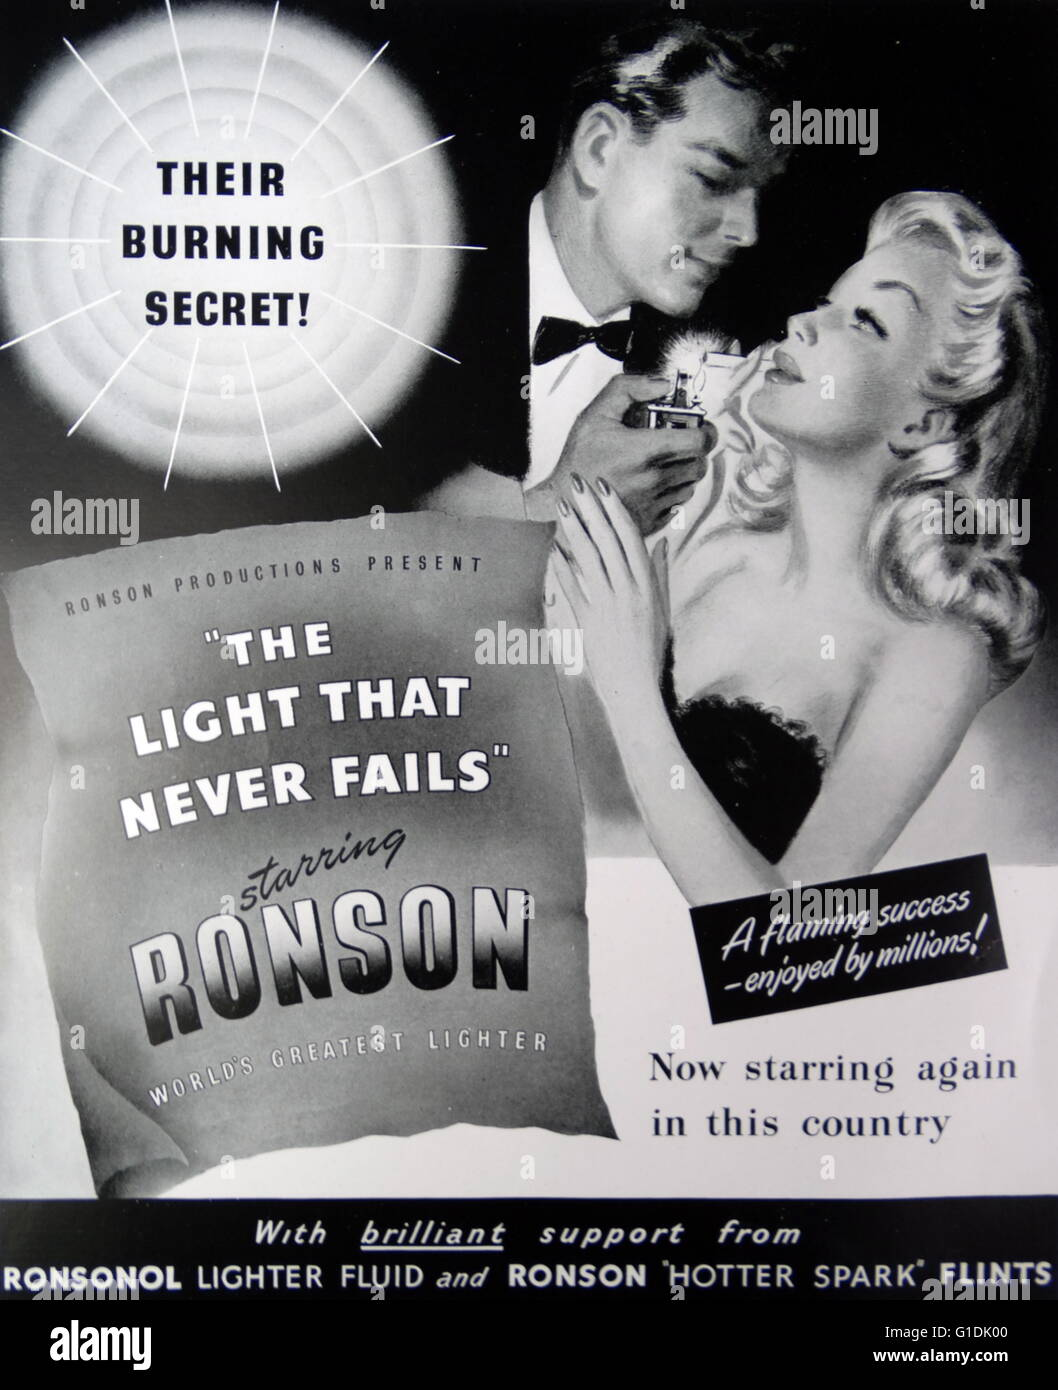 Advert for Ronson lighter fluid suggestive of romance and seduction. 1948 - Stock Image